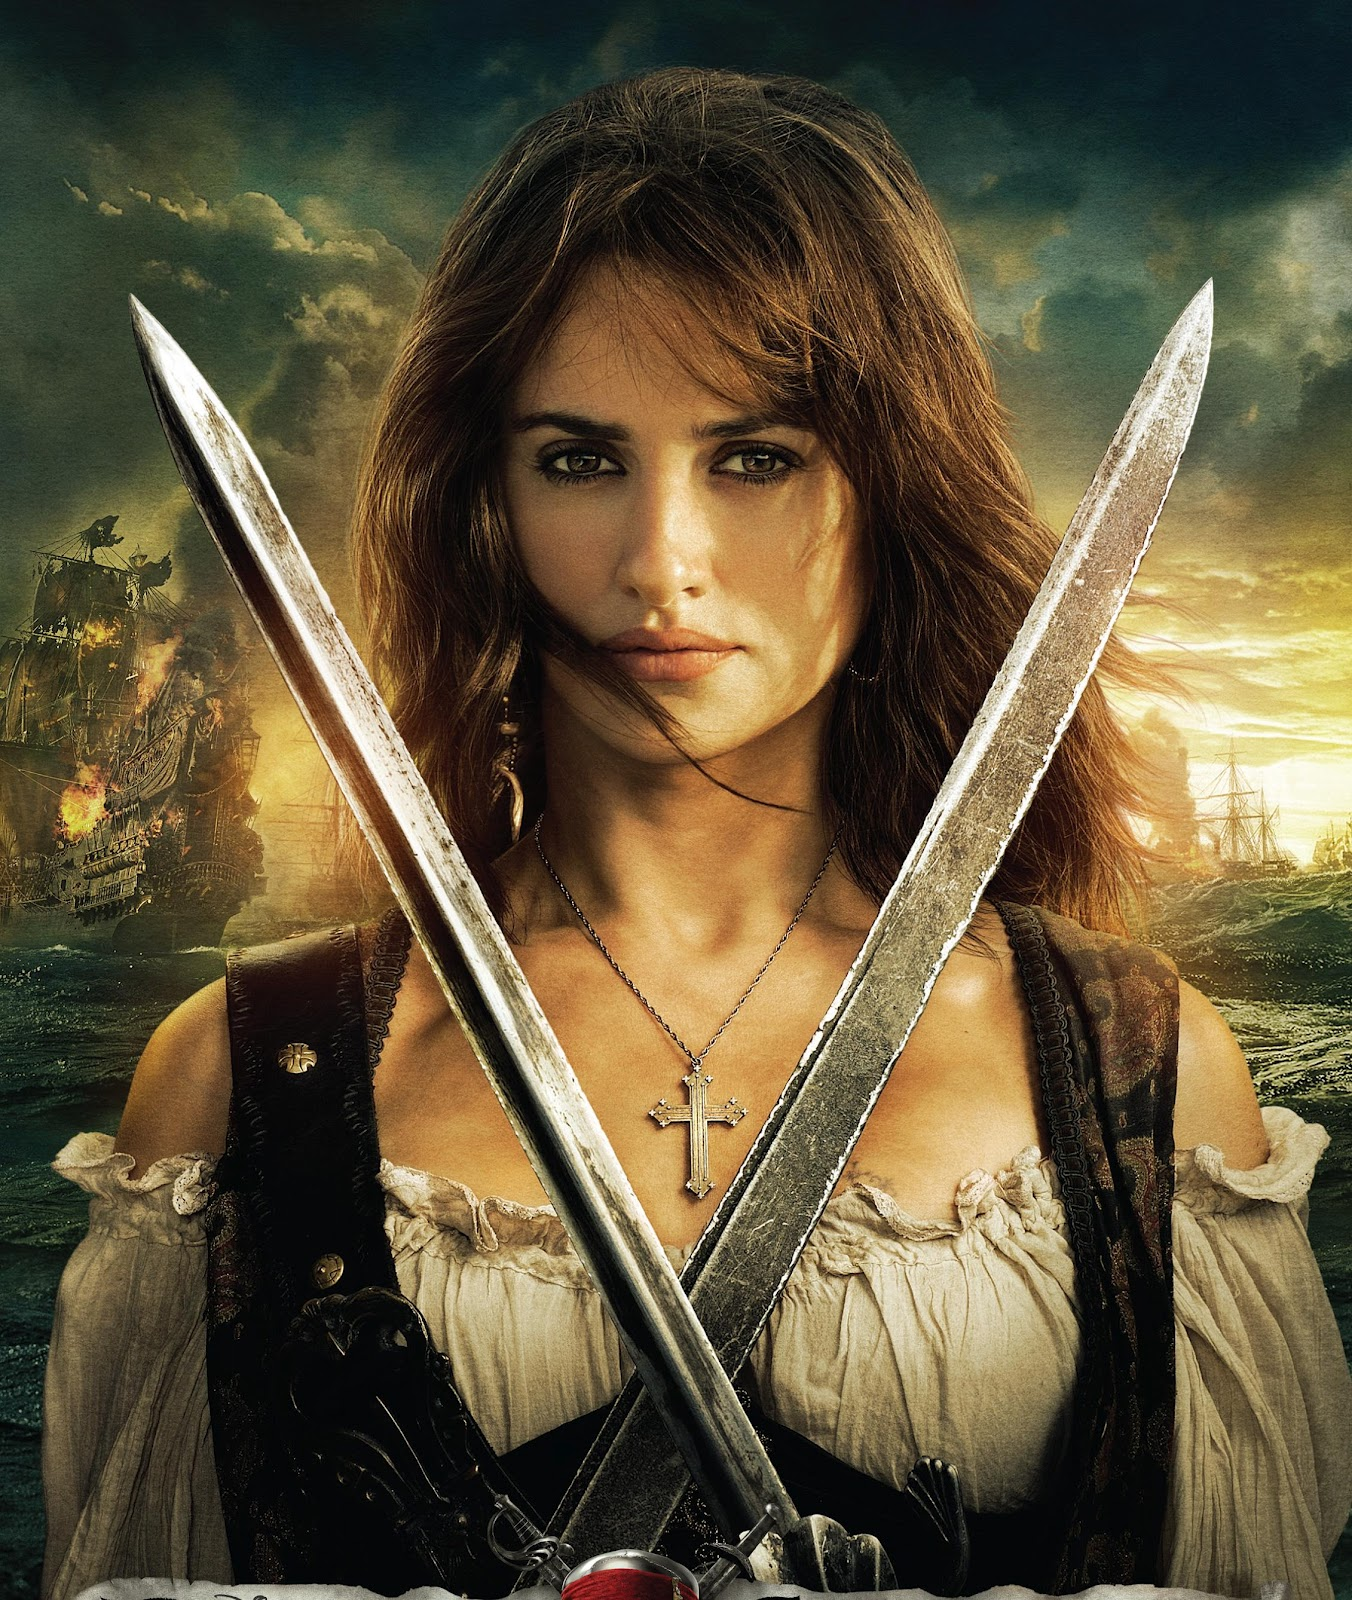 penelope cruz pirate